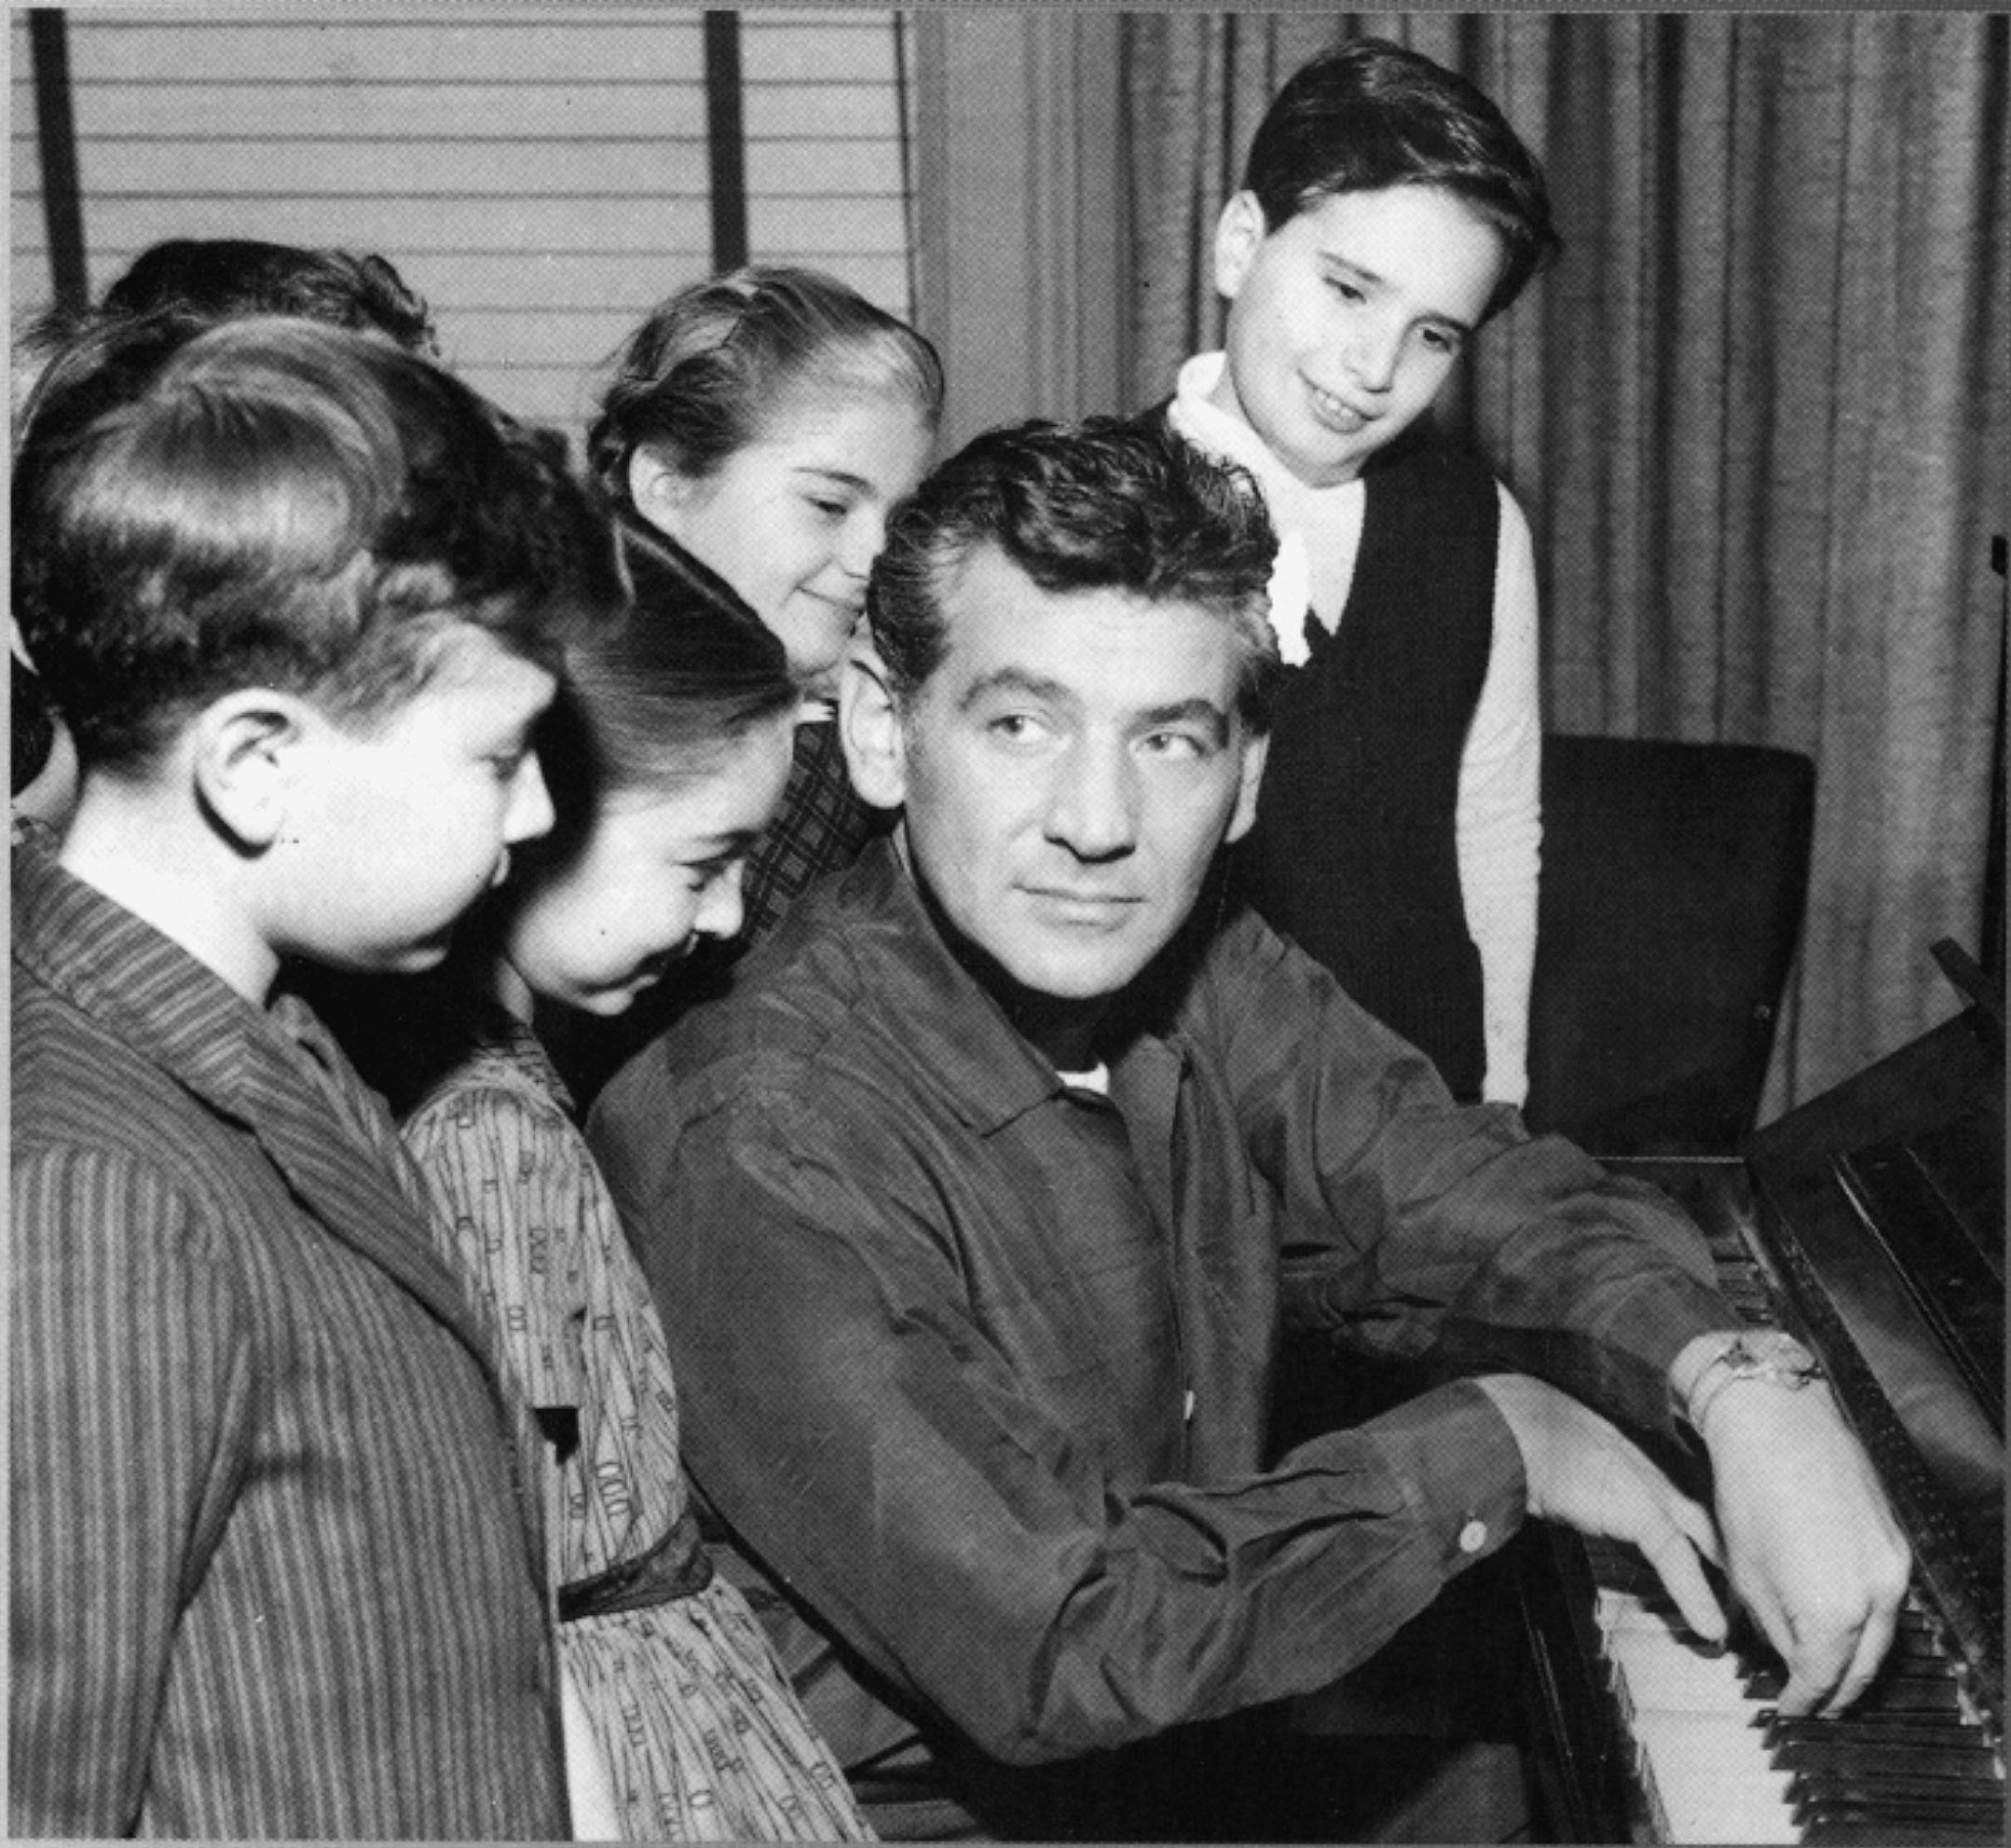 Leonard Bernstein at a piano with a crowd of children